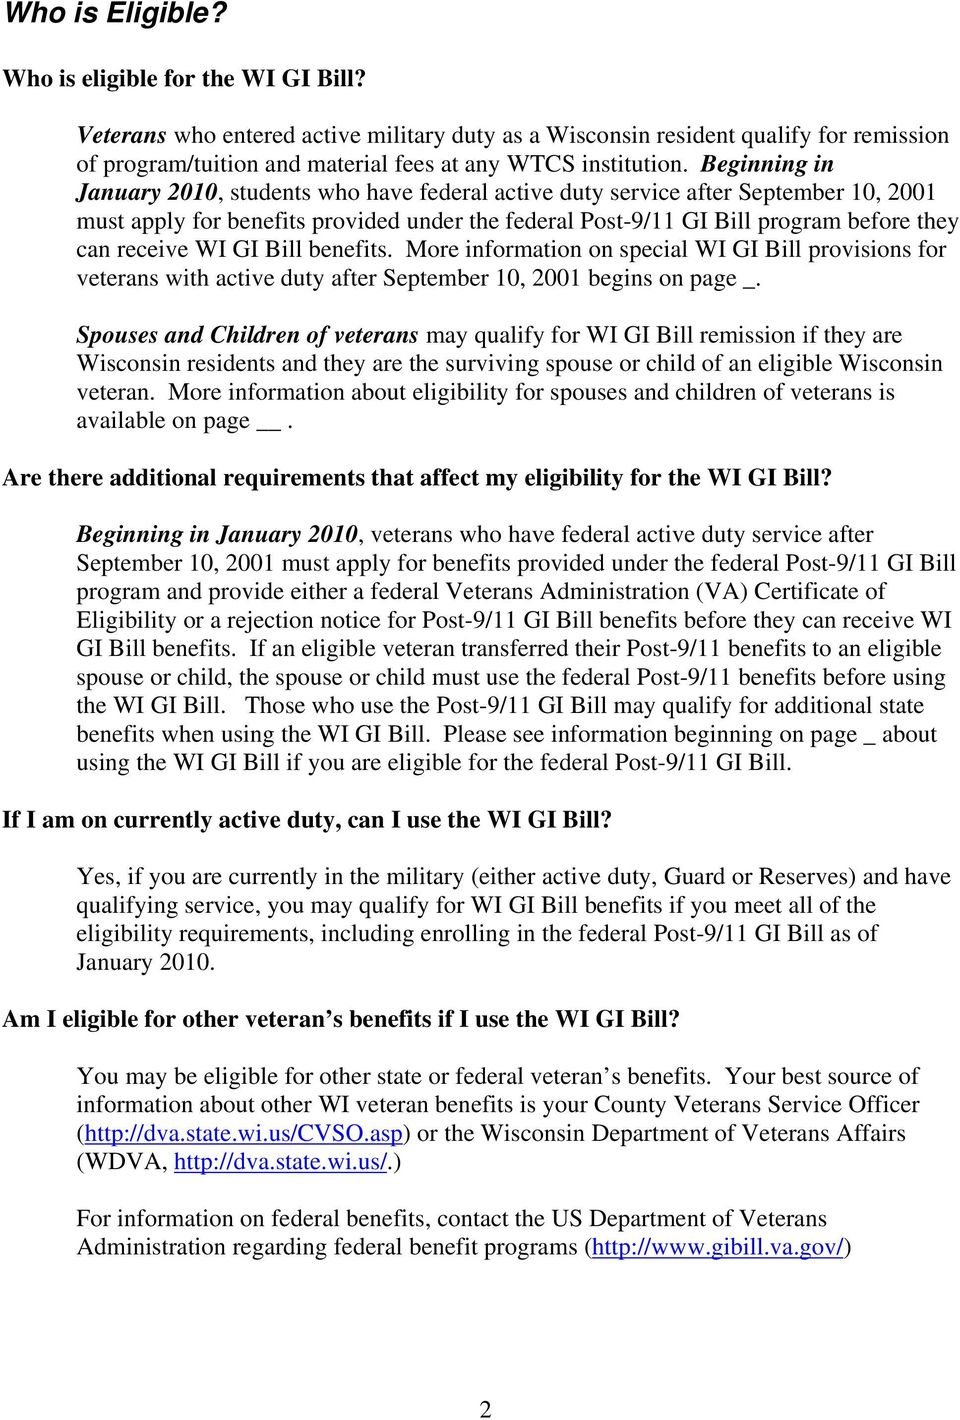 WI GI BILL BENEFITS: FREQUENTLY ASKED QUESTIONS - PDF